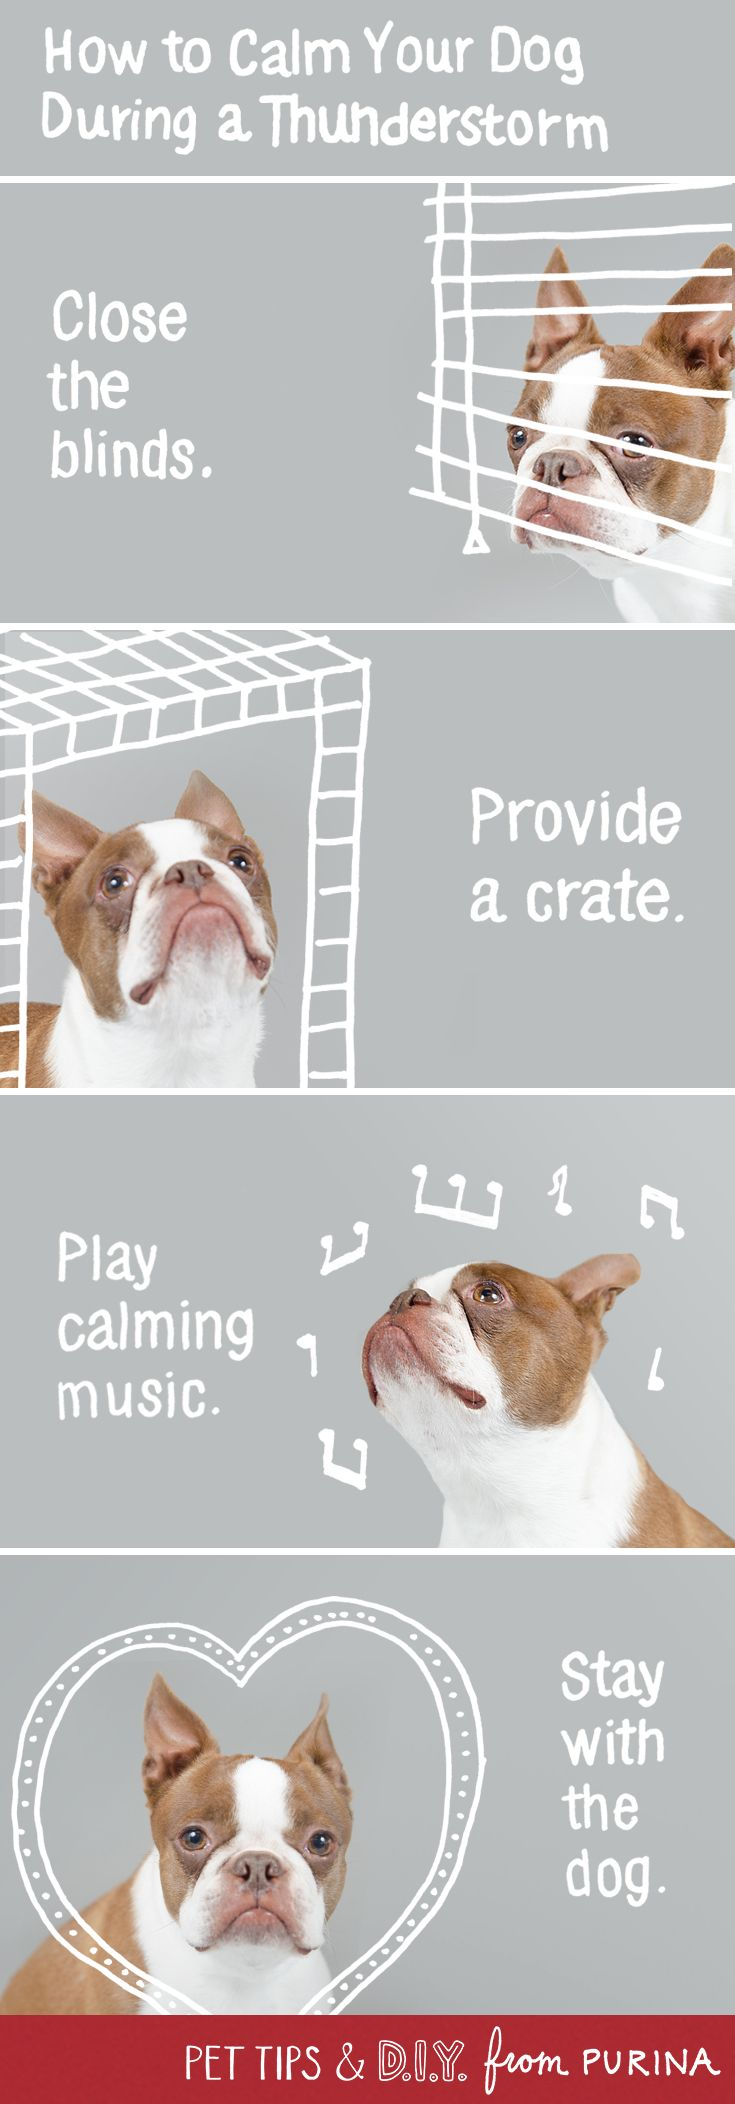 Help calm your dogs anxiety during thunderstorms with these dog calming tips!